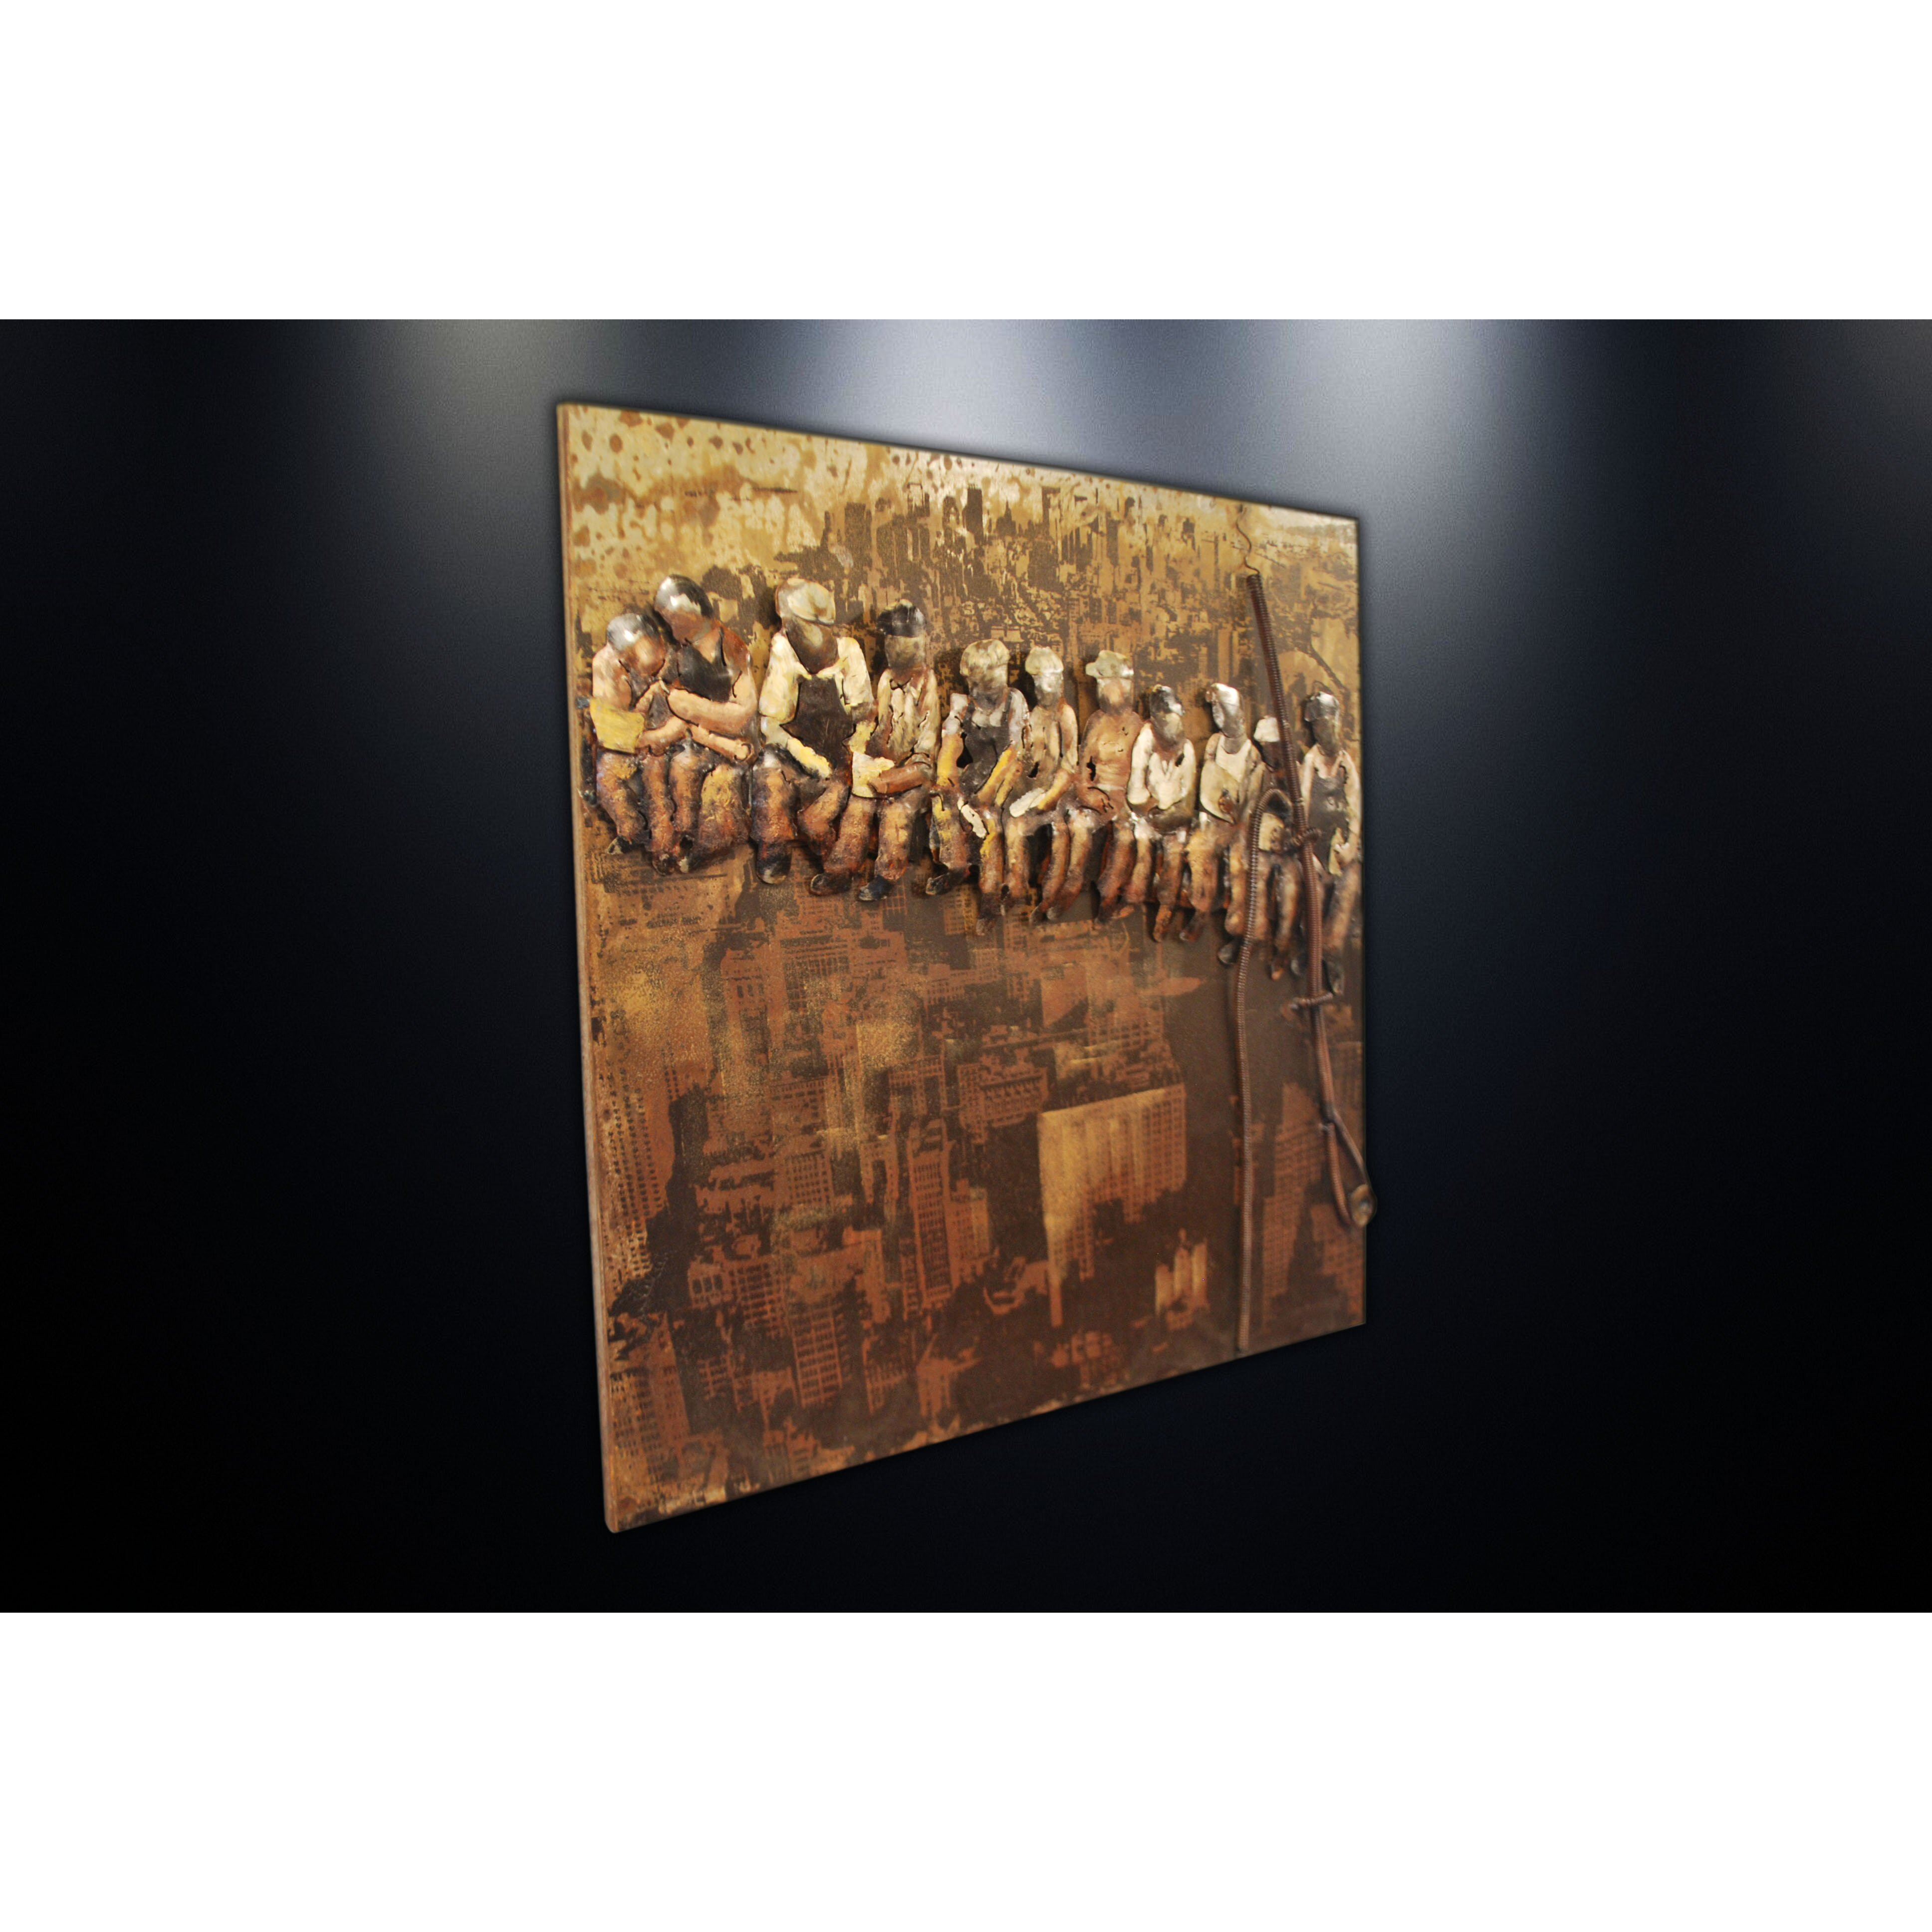 Home Decor Wall Groupings : Dsd group metal wall art sculpture home decor lunch on a